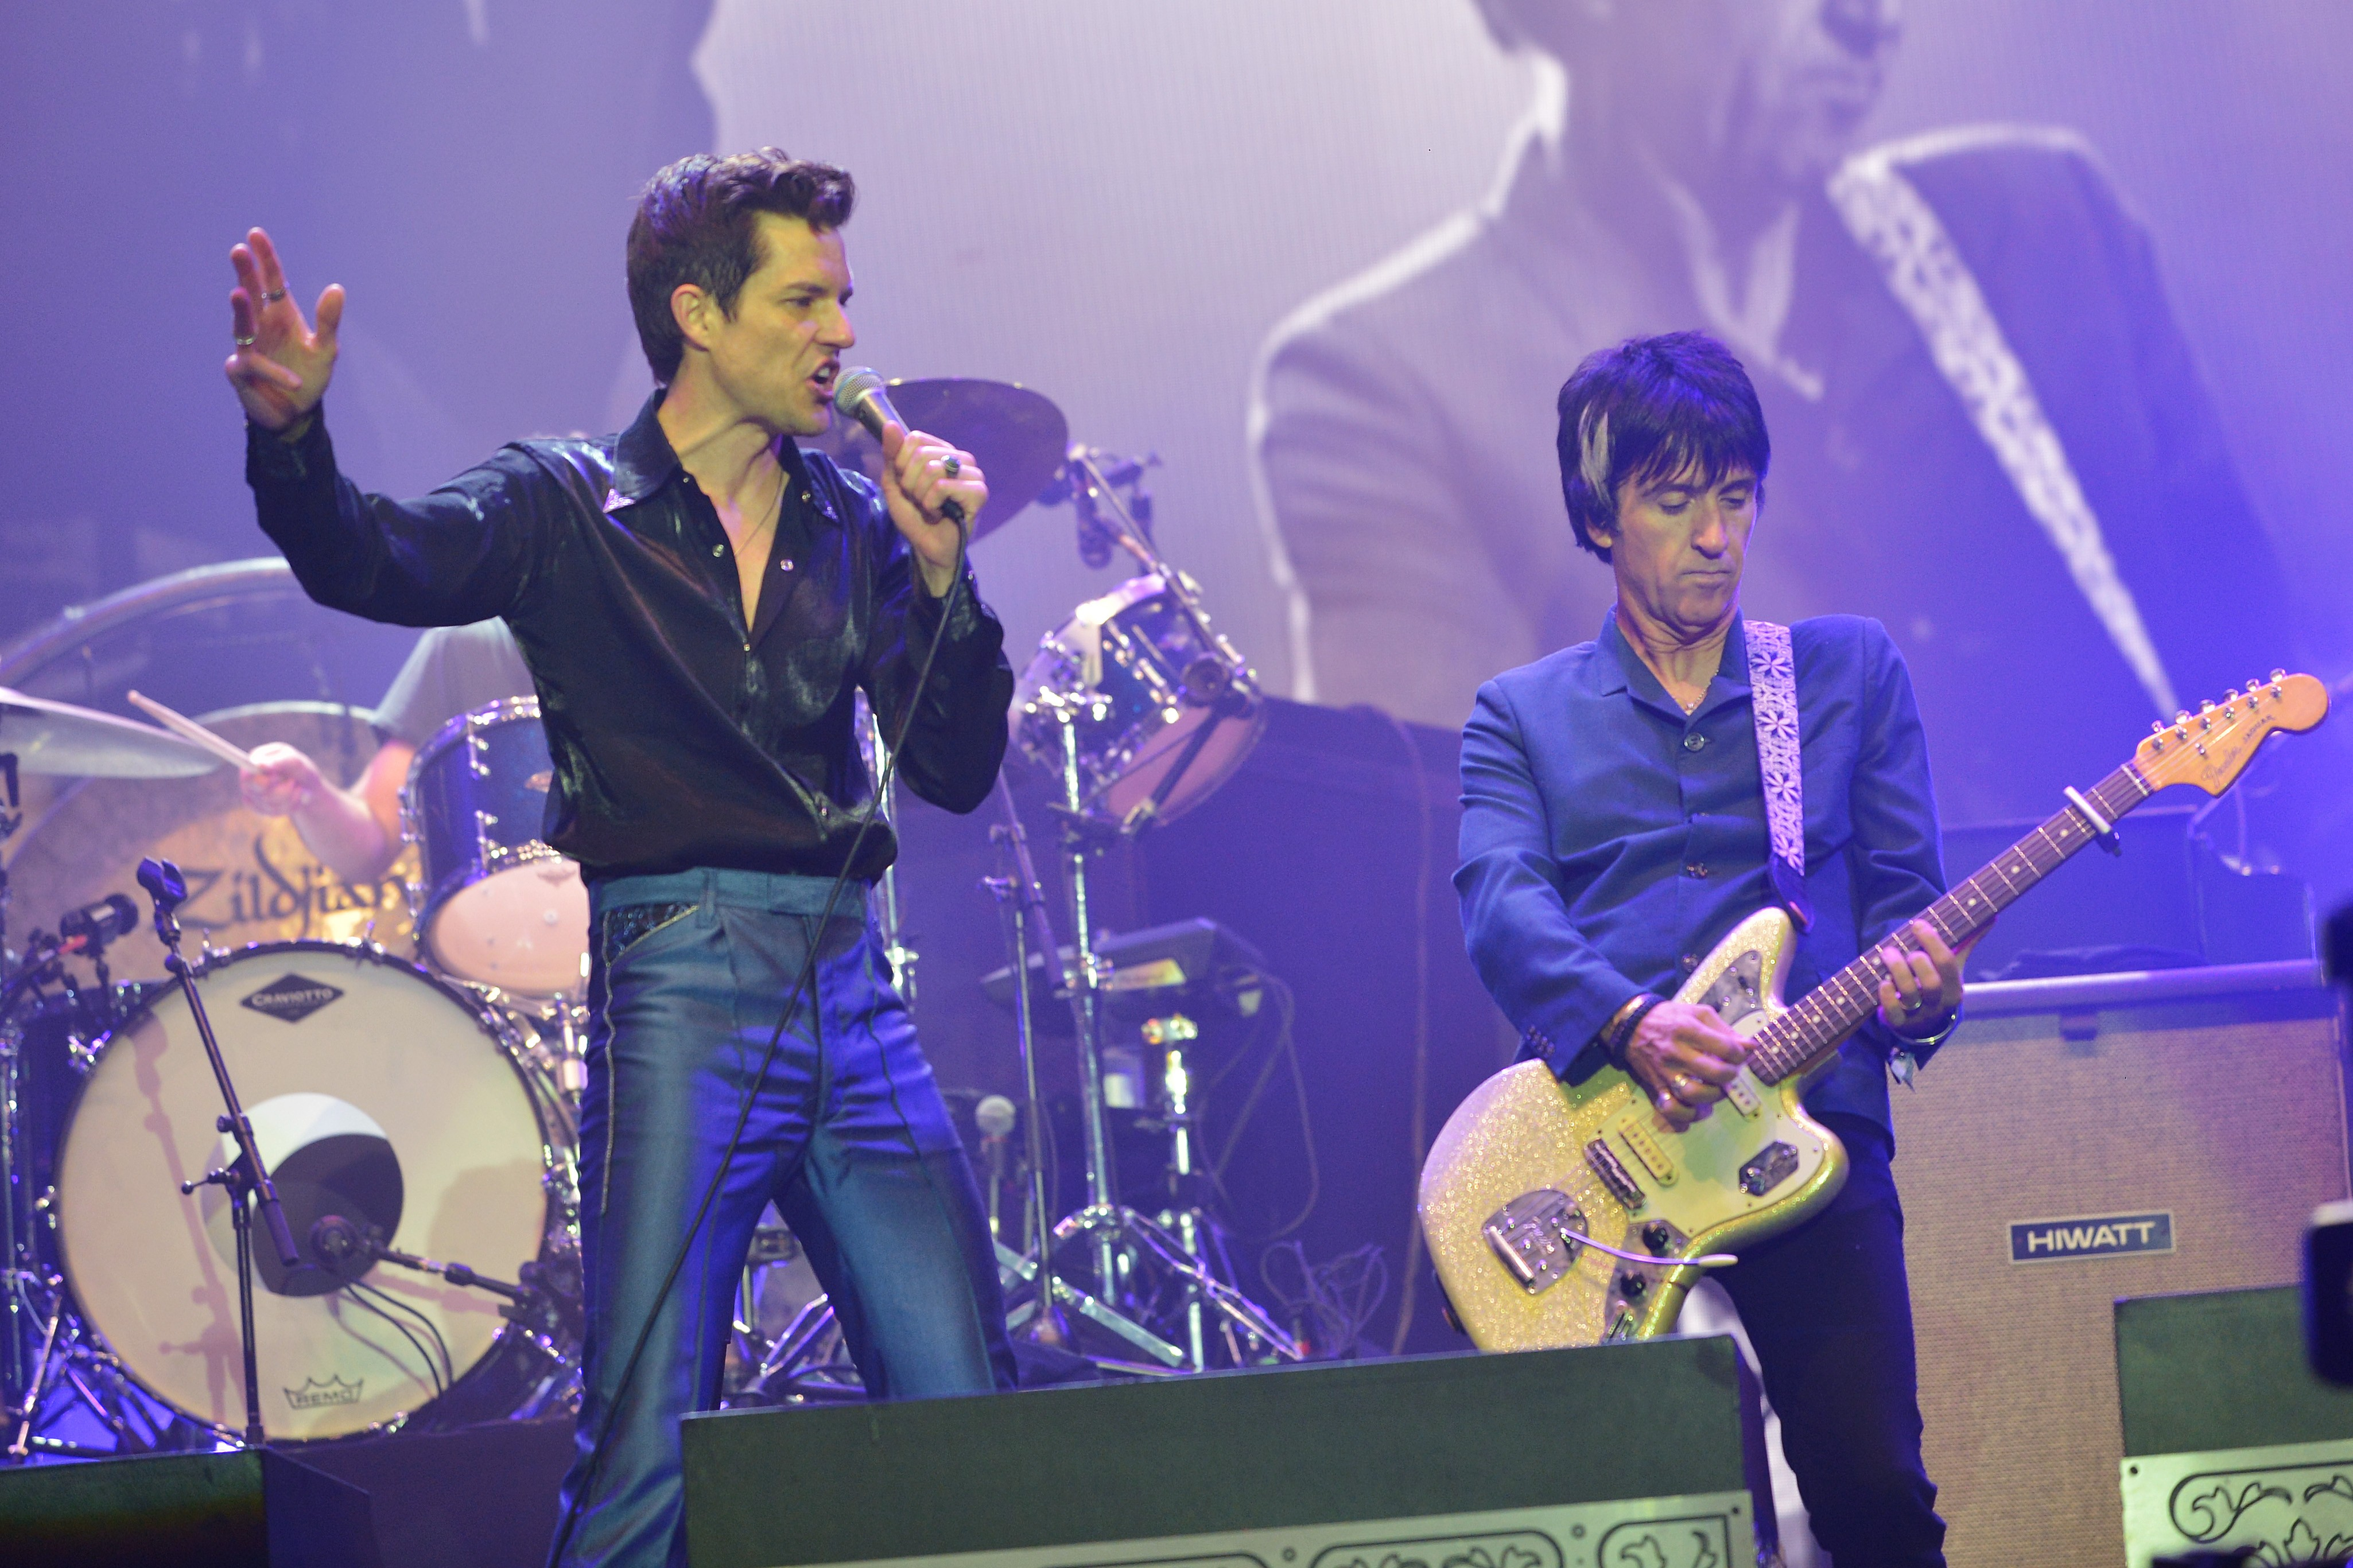 the-killers-bring-out-johnny-marr-pet-shop-boys-at-glastonbury-2019-watch